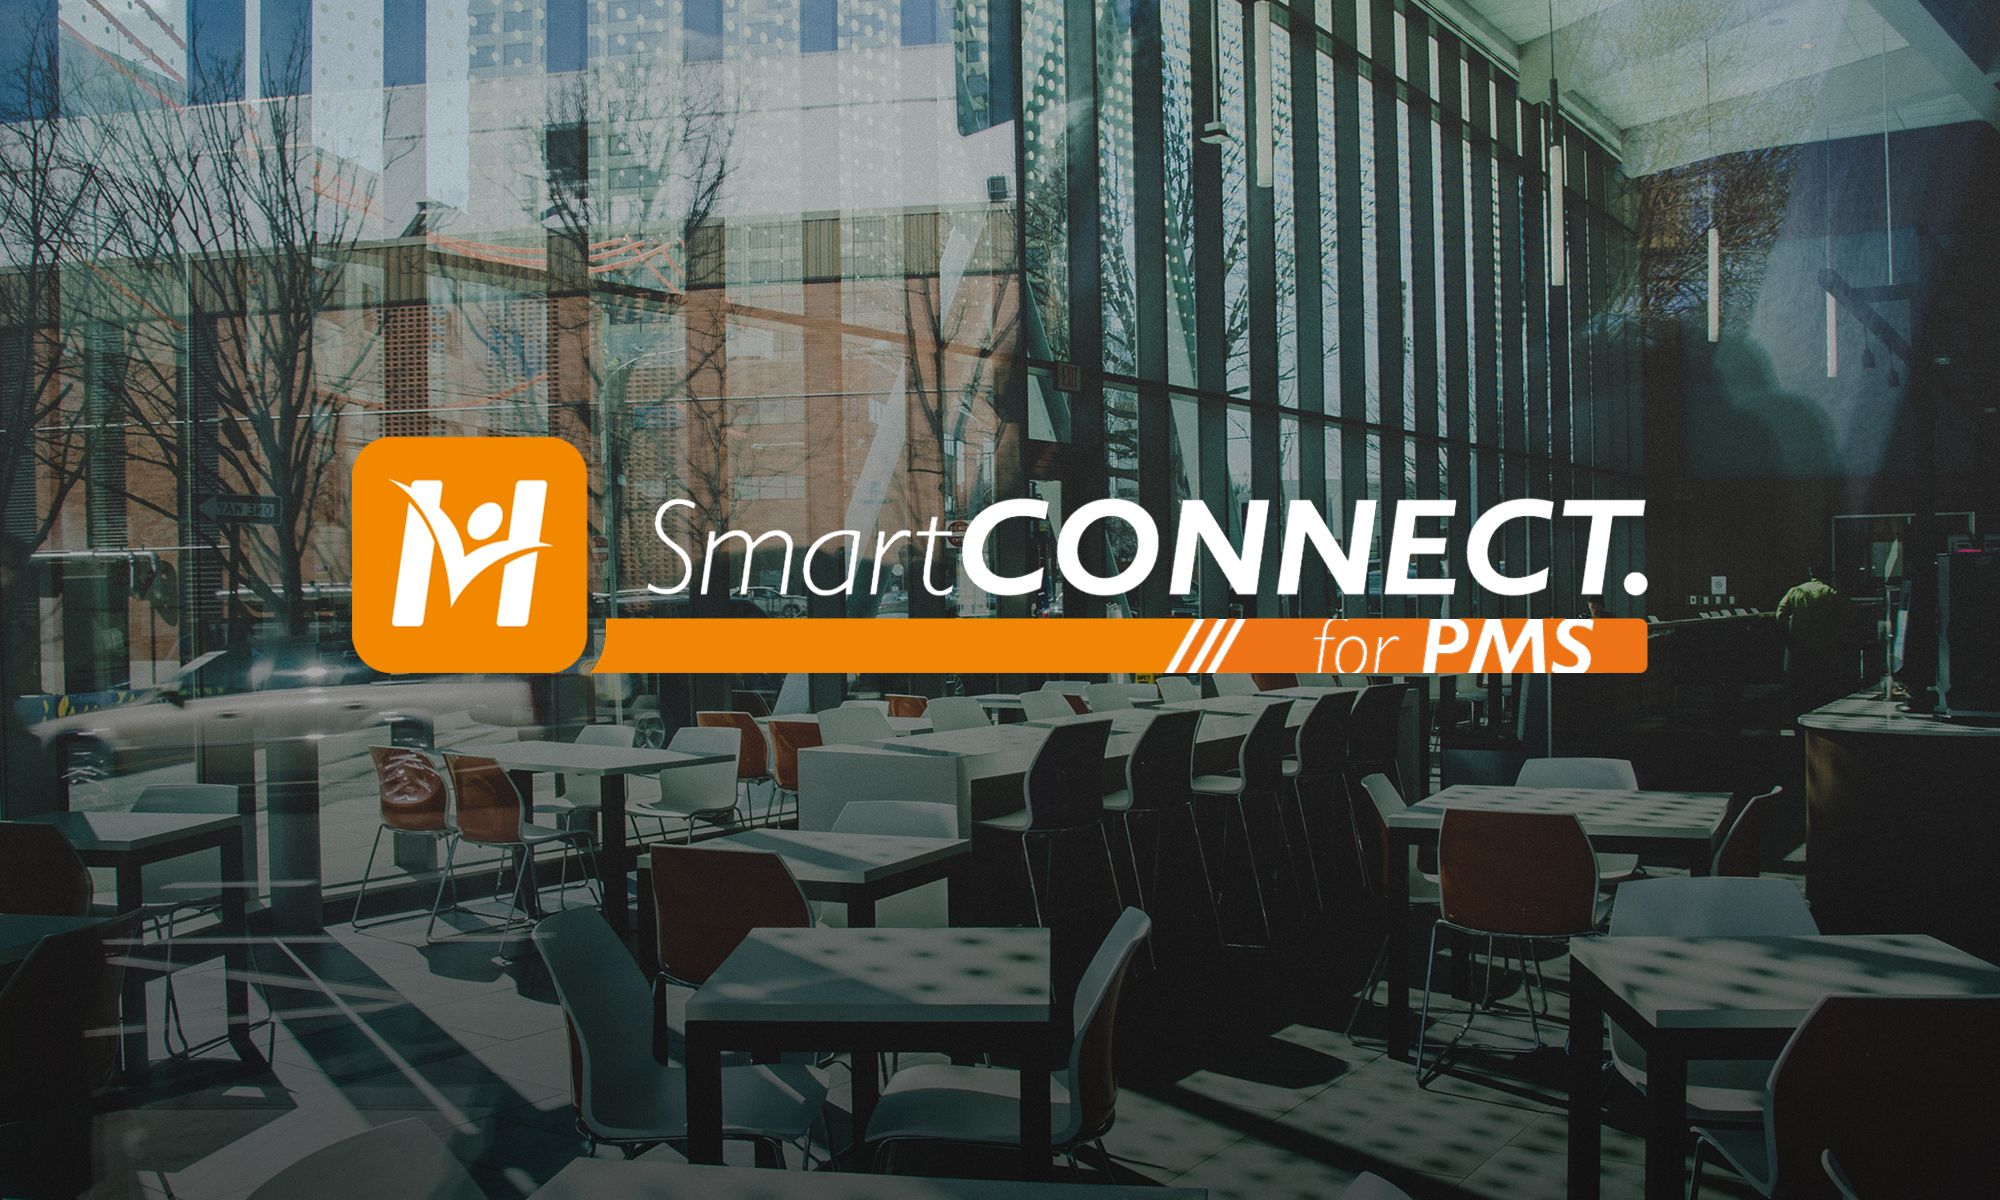 SmartCONNECT for PMS Achieves Oracle Validated Integration with Oracle Hospitality OPERA RRS